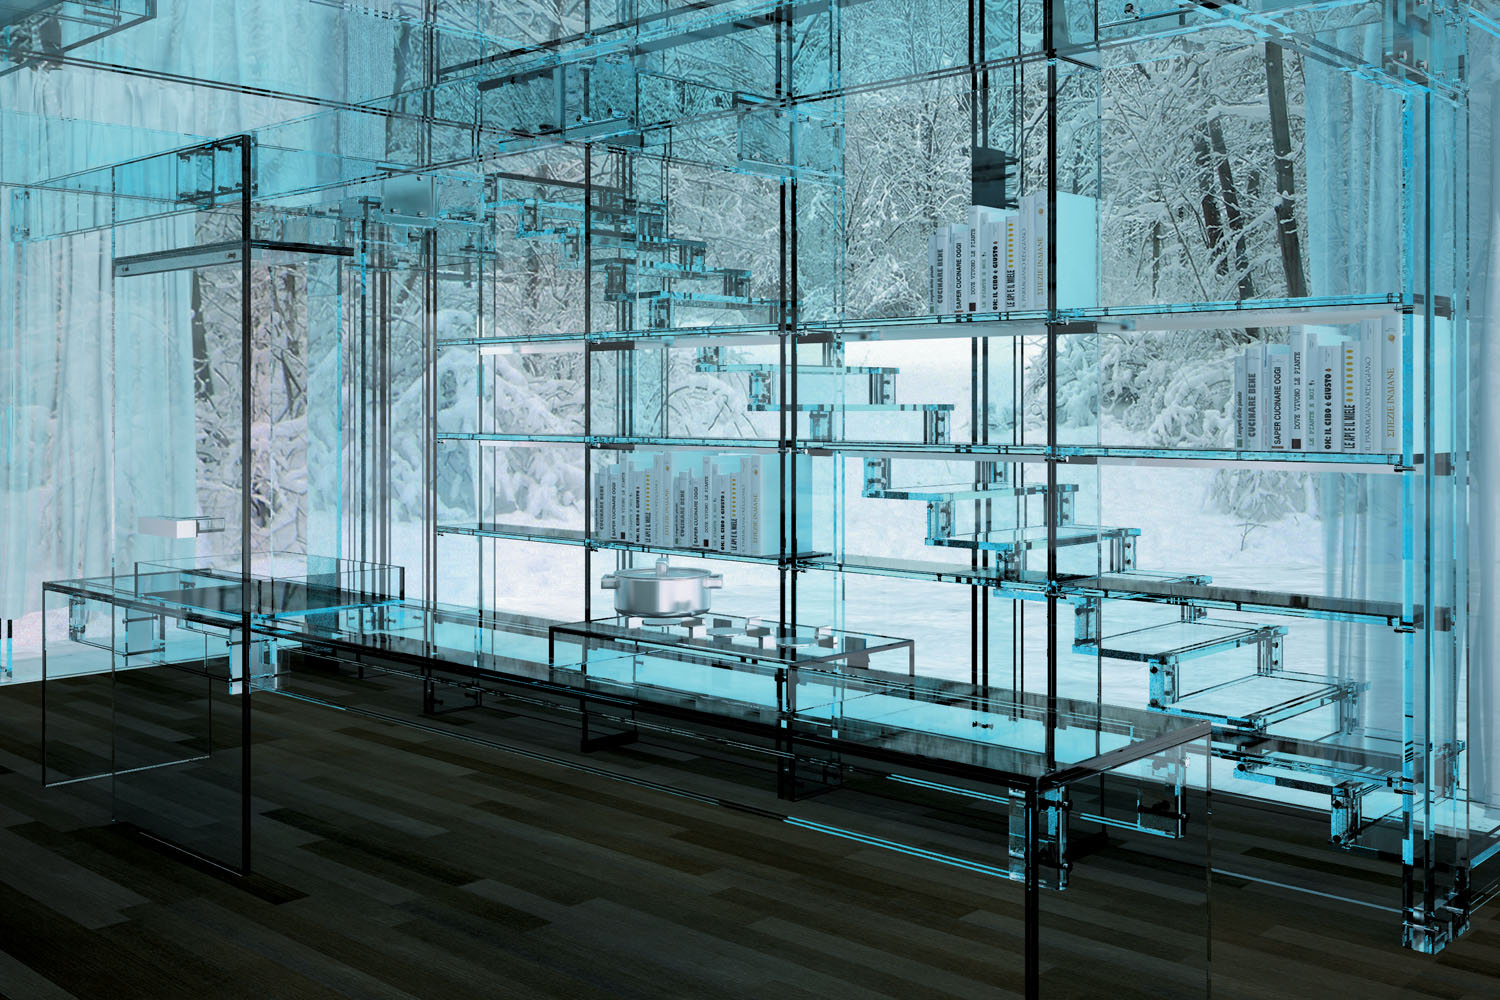 Glass glorious glass: incorporating glass into your home